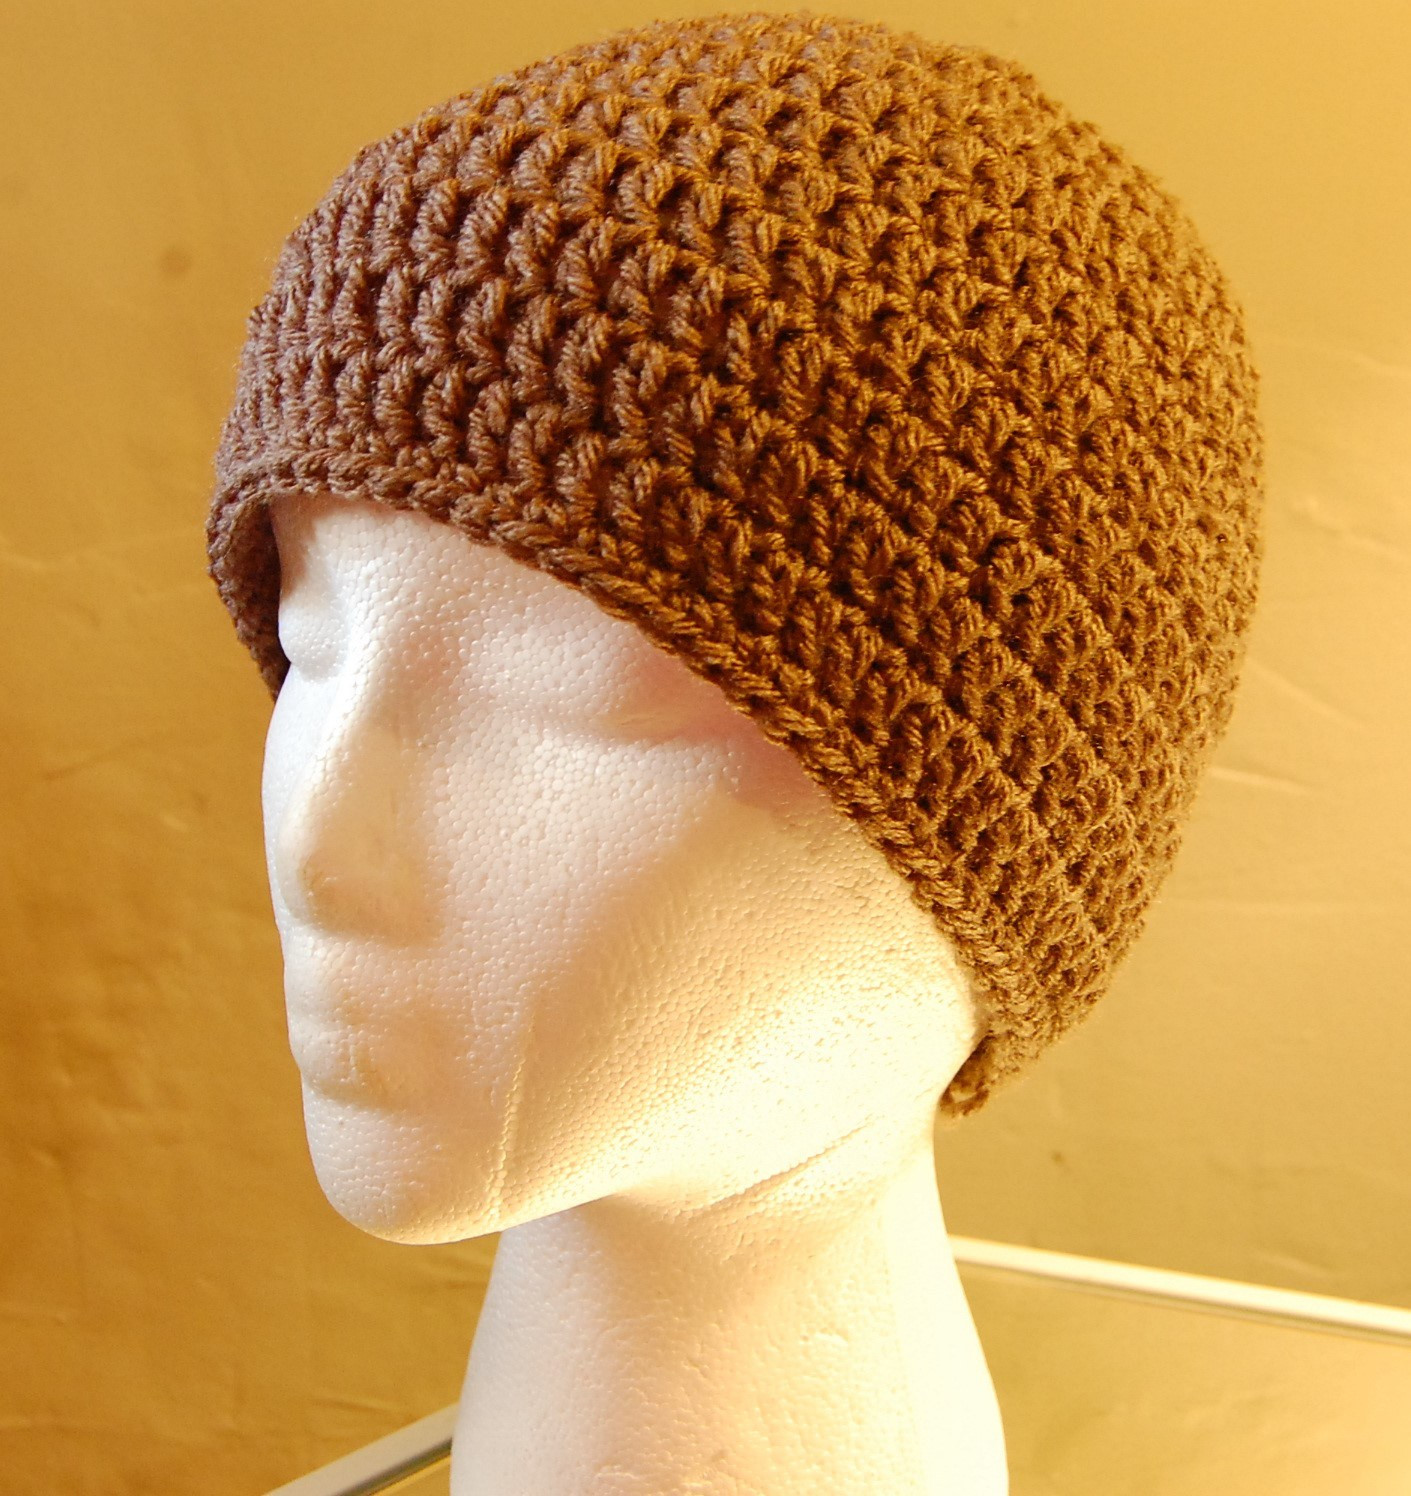 New Men S Crochet Hat Pattern Crochet Stitches for Hats Of Lovely 46 Models Crochet Stitches for Hats